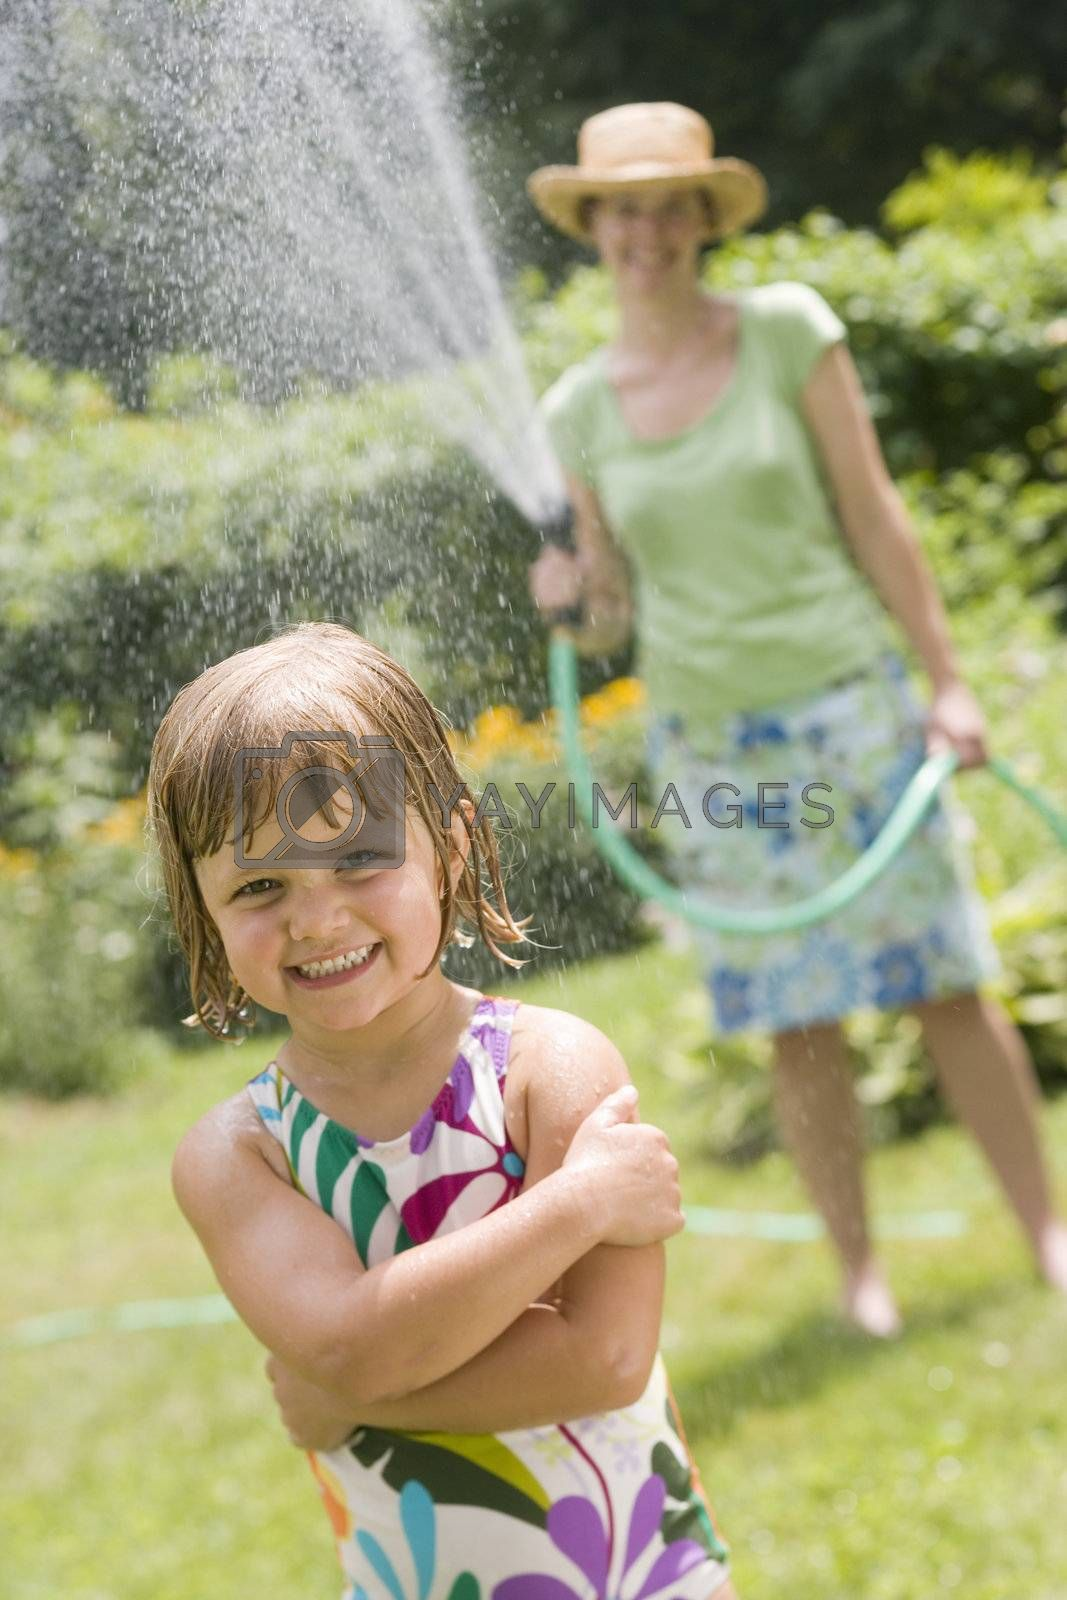 Pretty woman spraying little girl with water from a garden hose in the Summertime